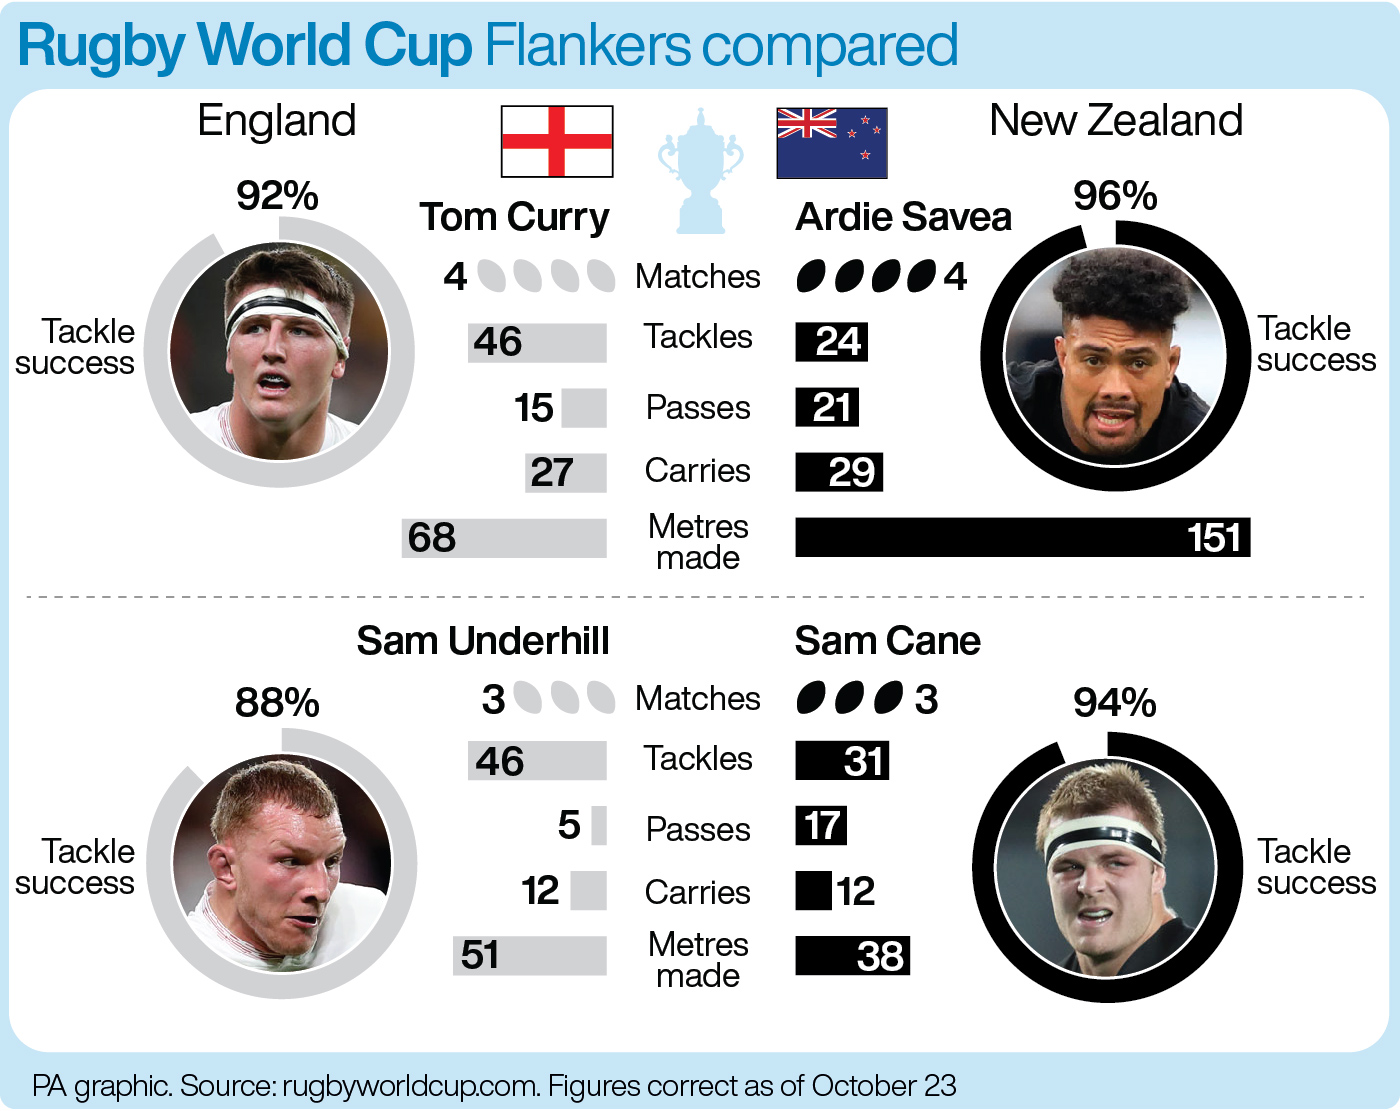 How England and New Zealand's flankers compare